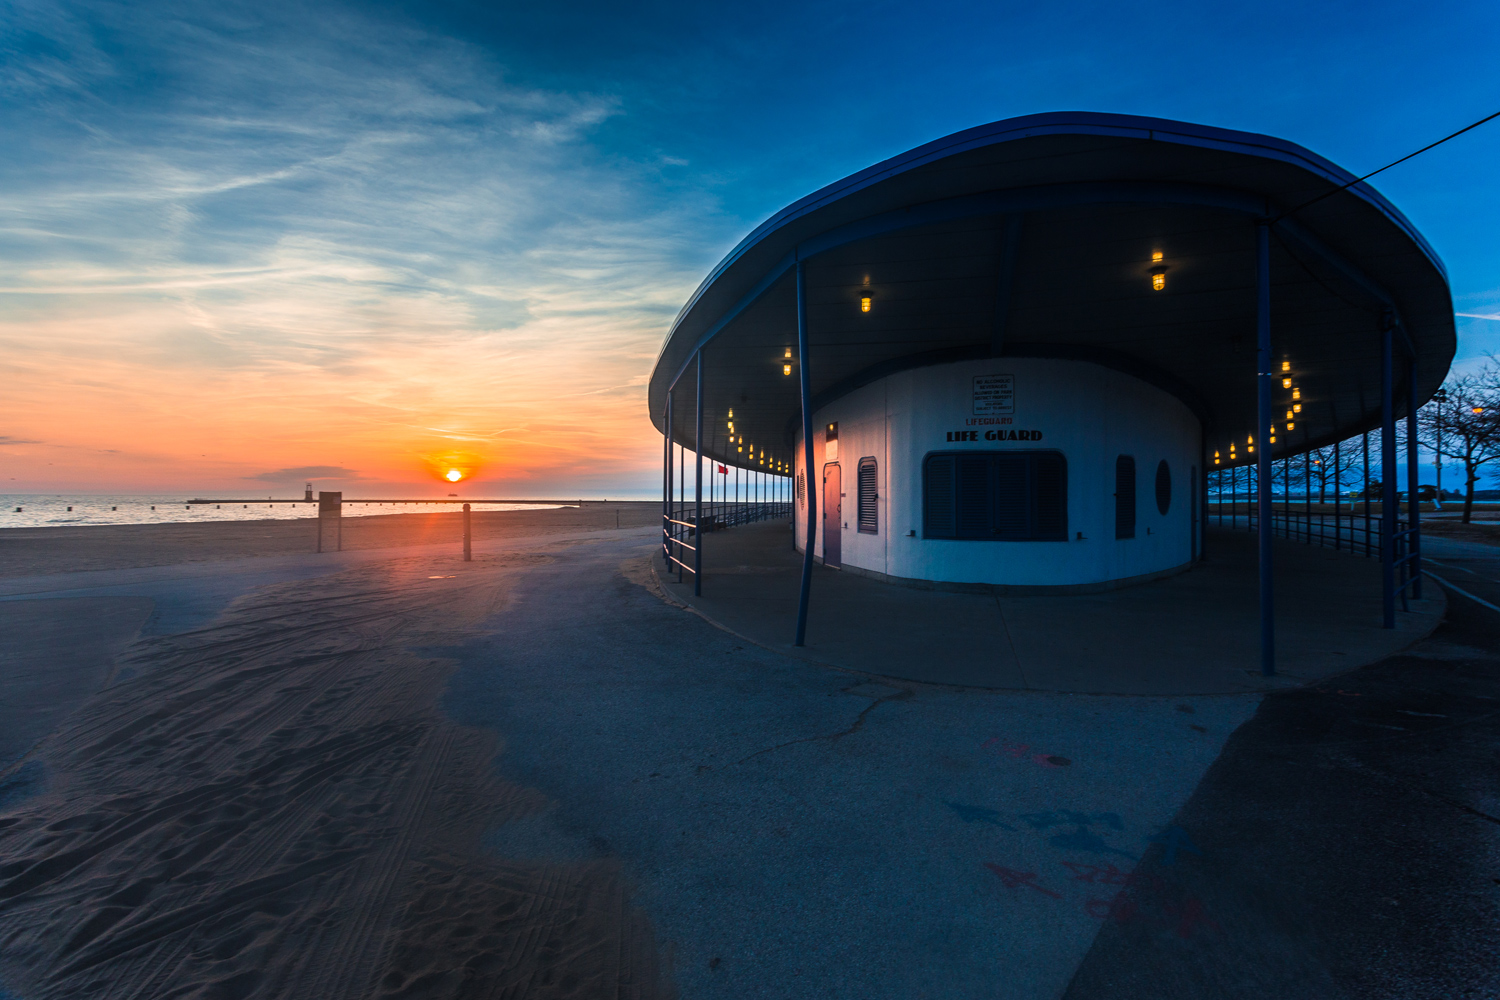 Sunrise at the Guard House